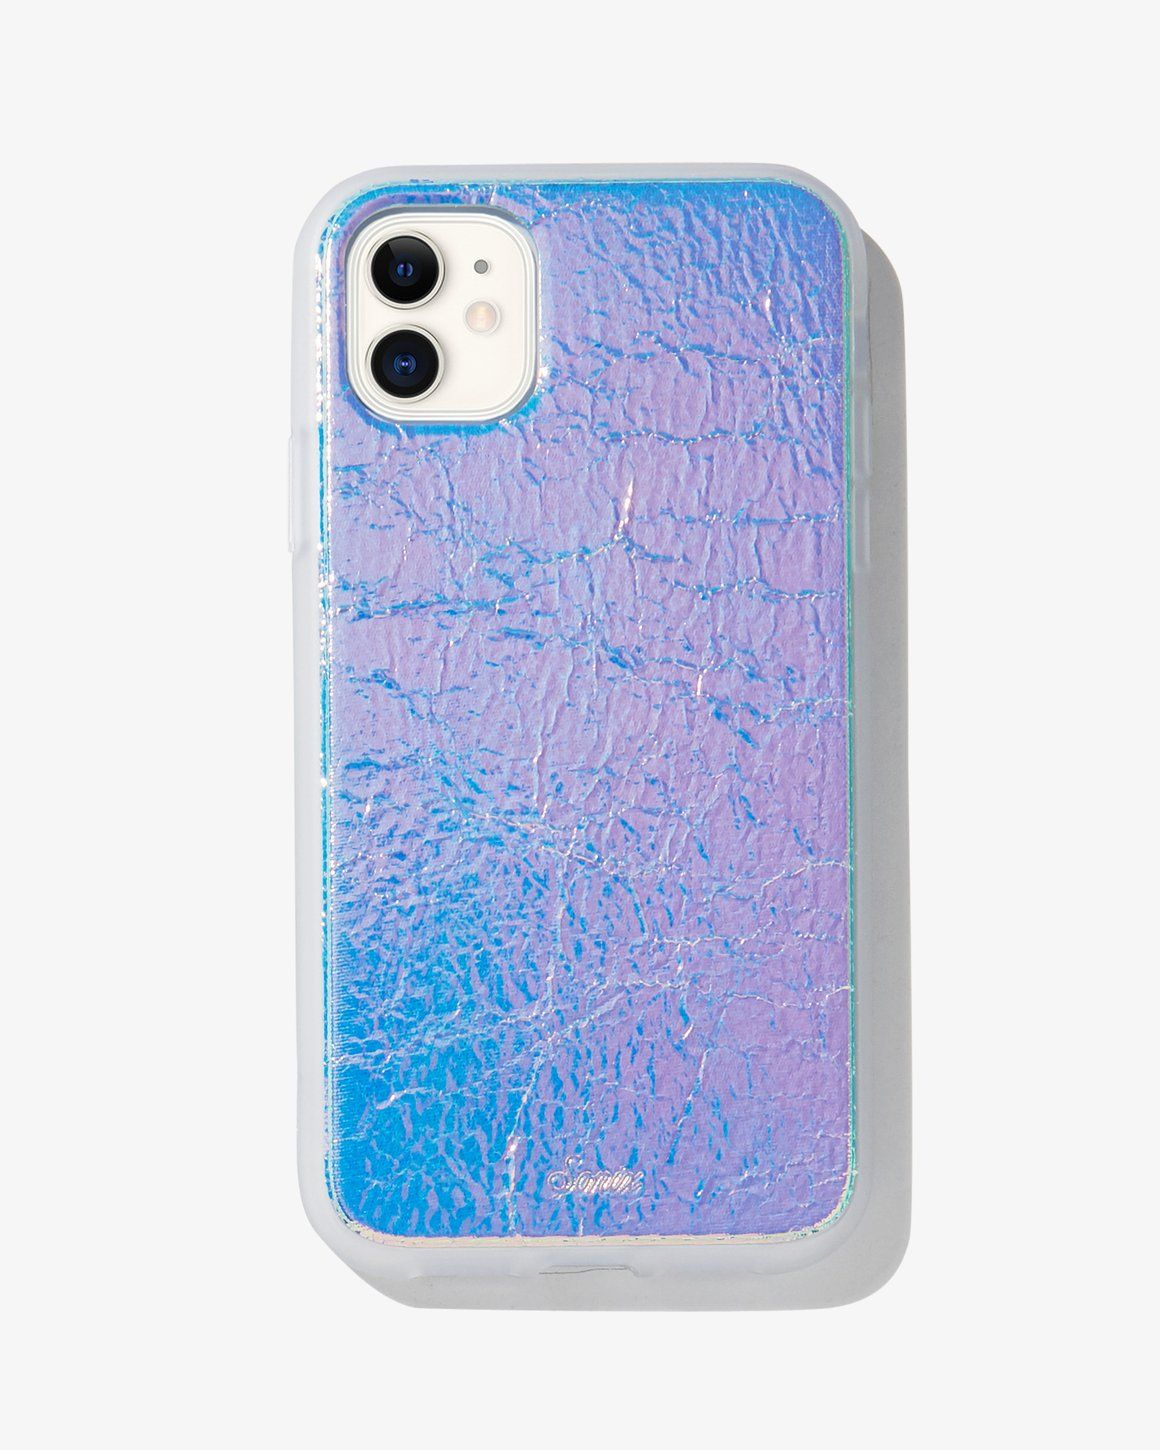 Holographic leather iphone 11 xr iphone phone cases